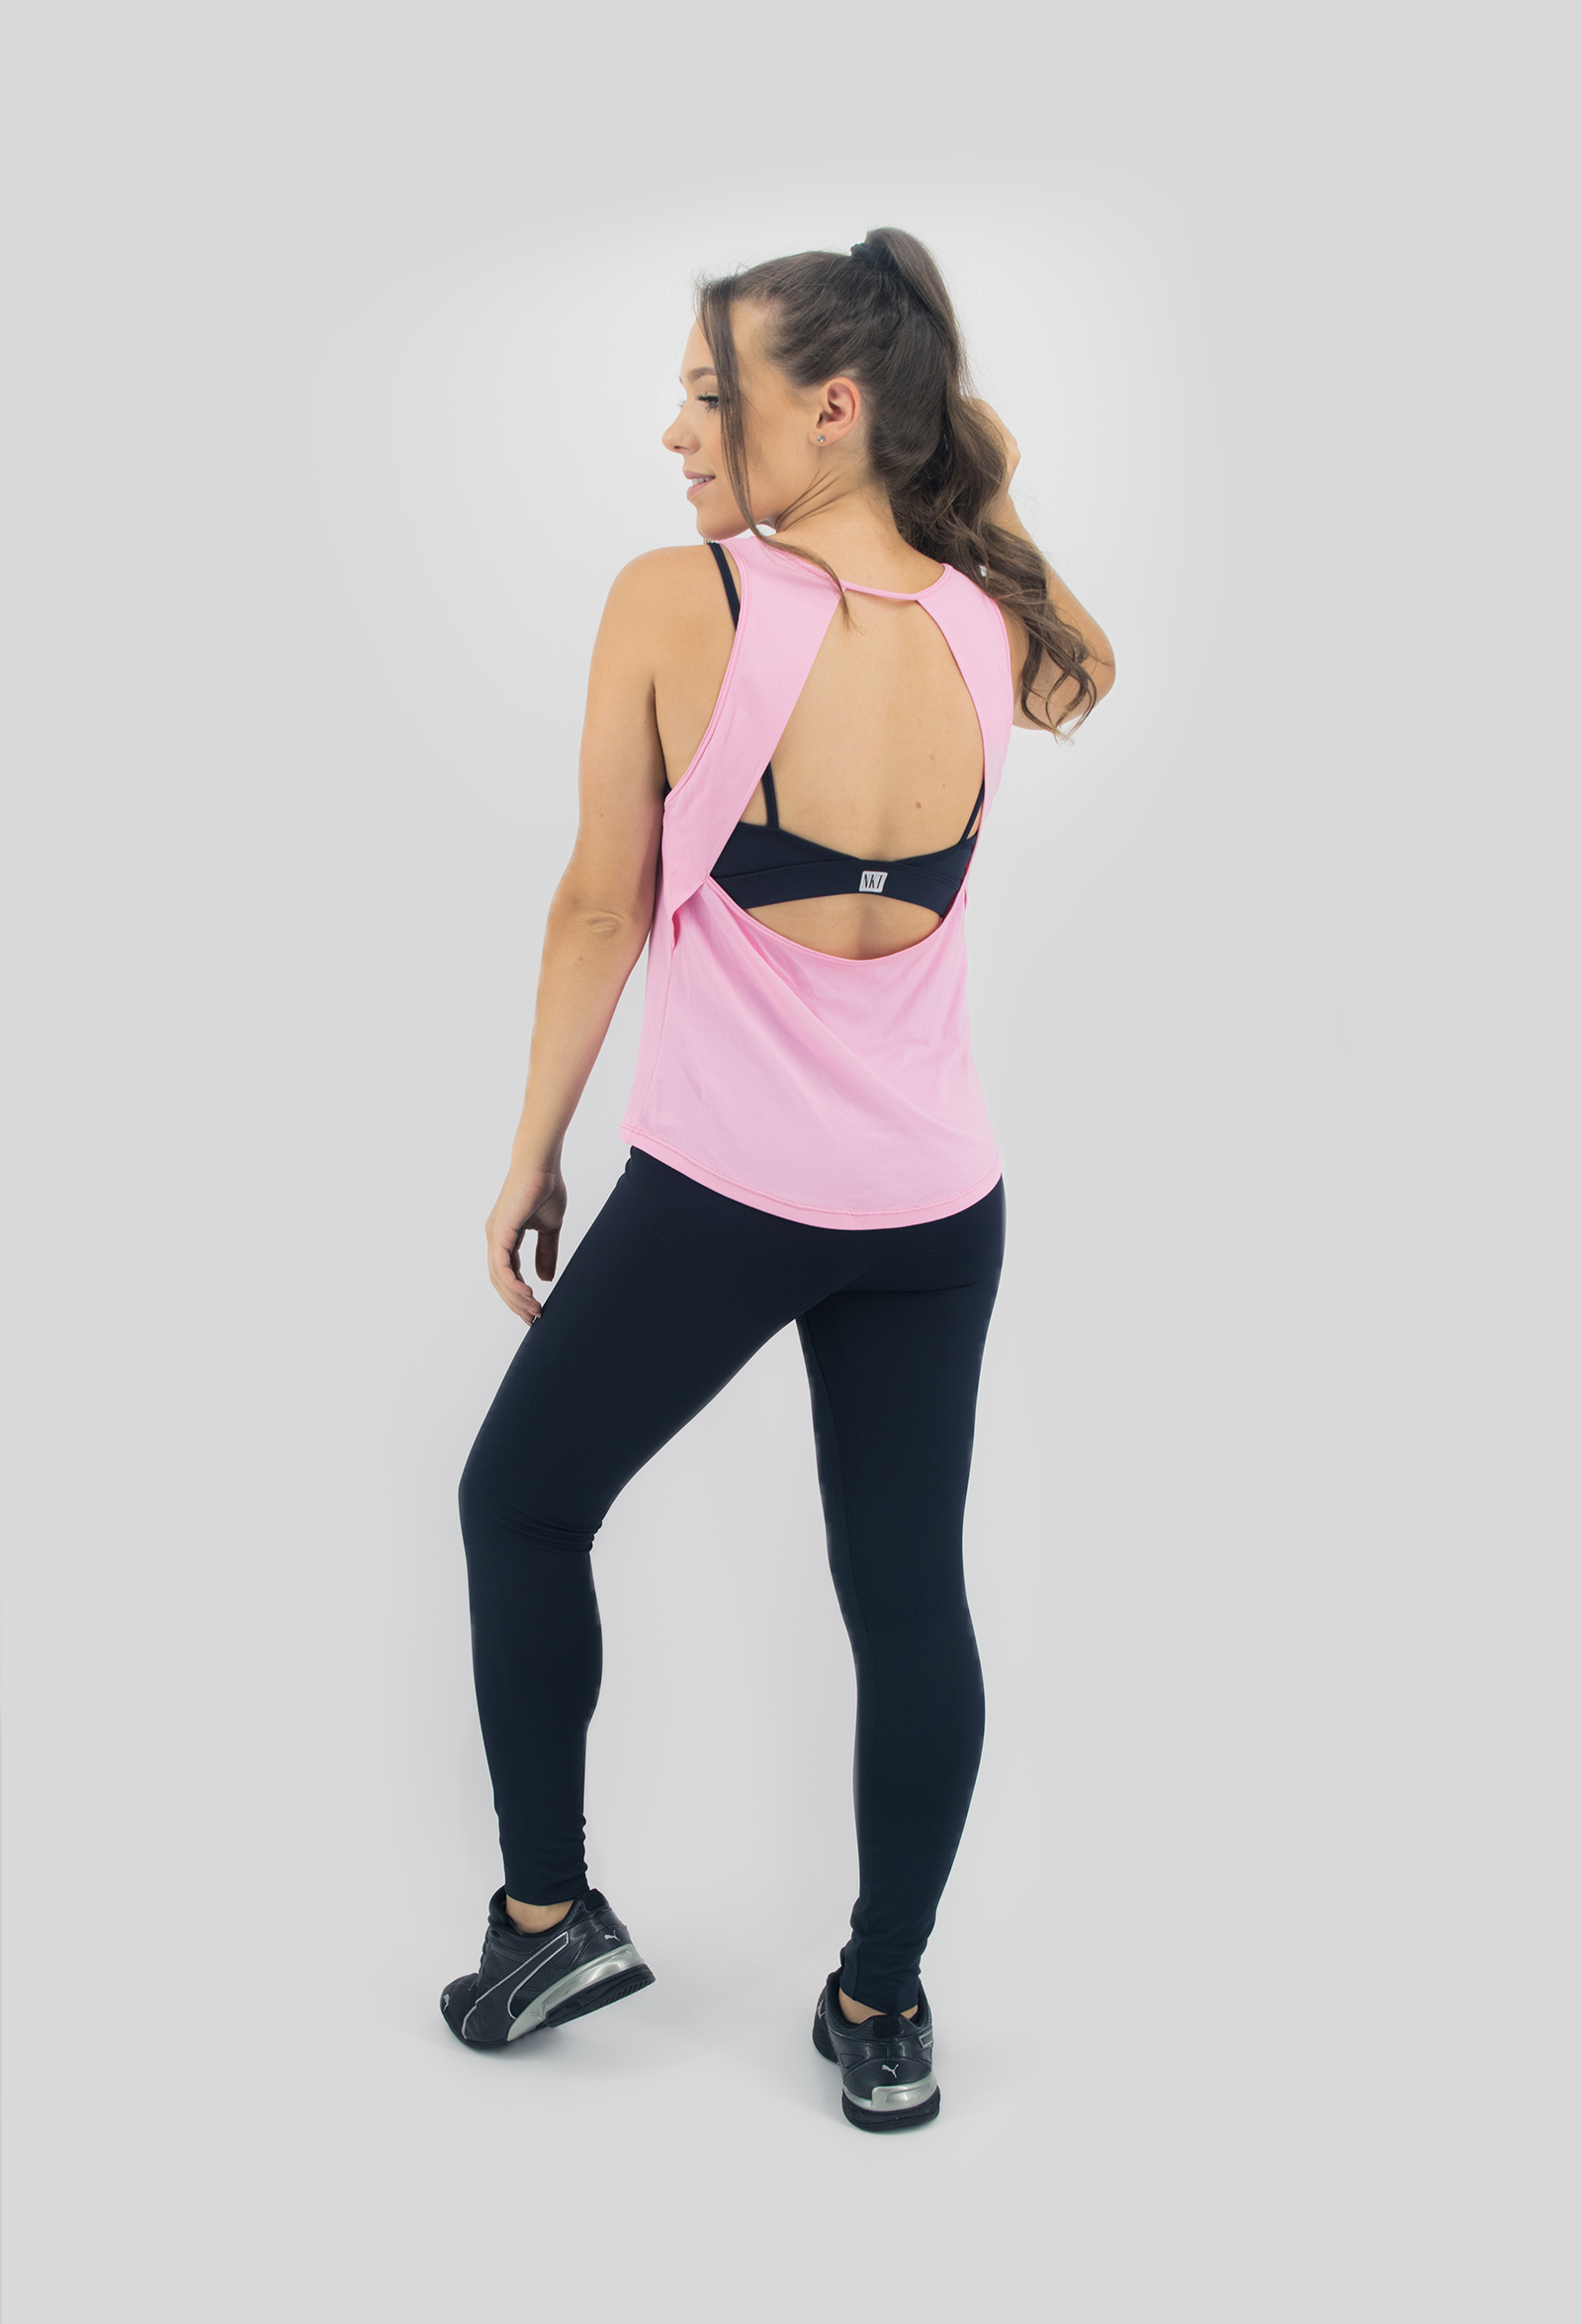 Regata Lux Rosa, Coleção Move Your Body - NKT Fitwear Moda Fitness